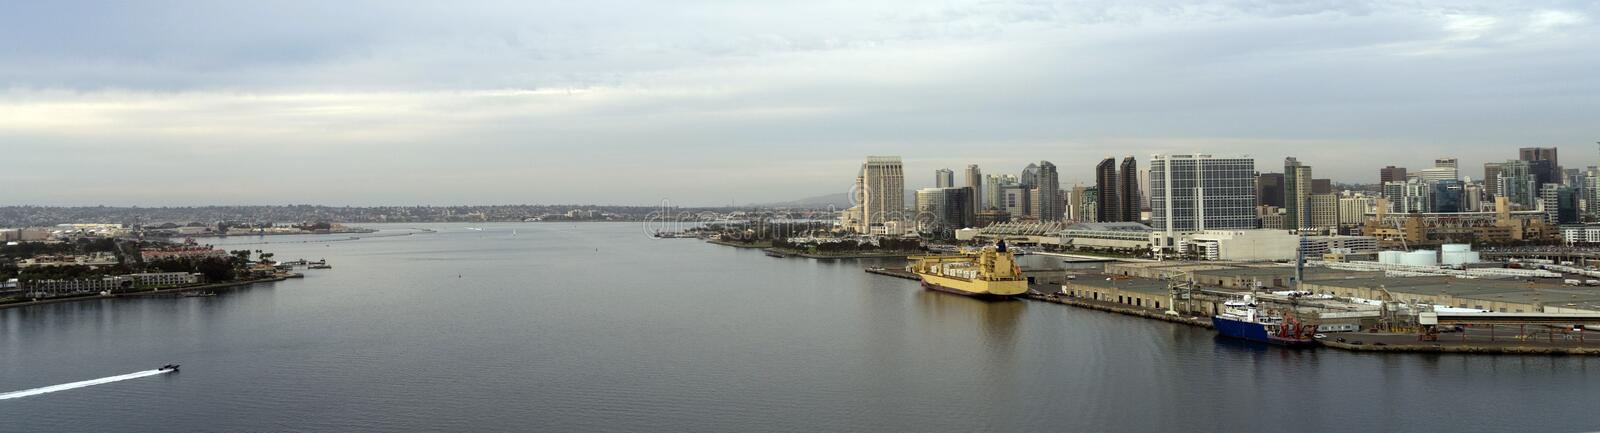 Unique View San Diego California Port Downtown City Skyline. Aerial view of the bay between Coronado and San Diego southern California USA stock photo